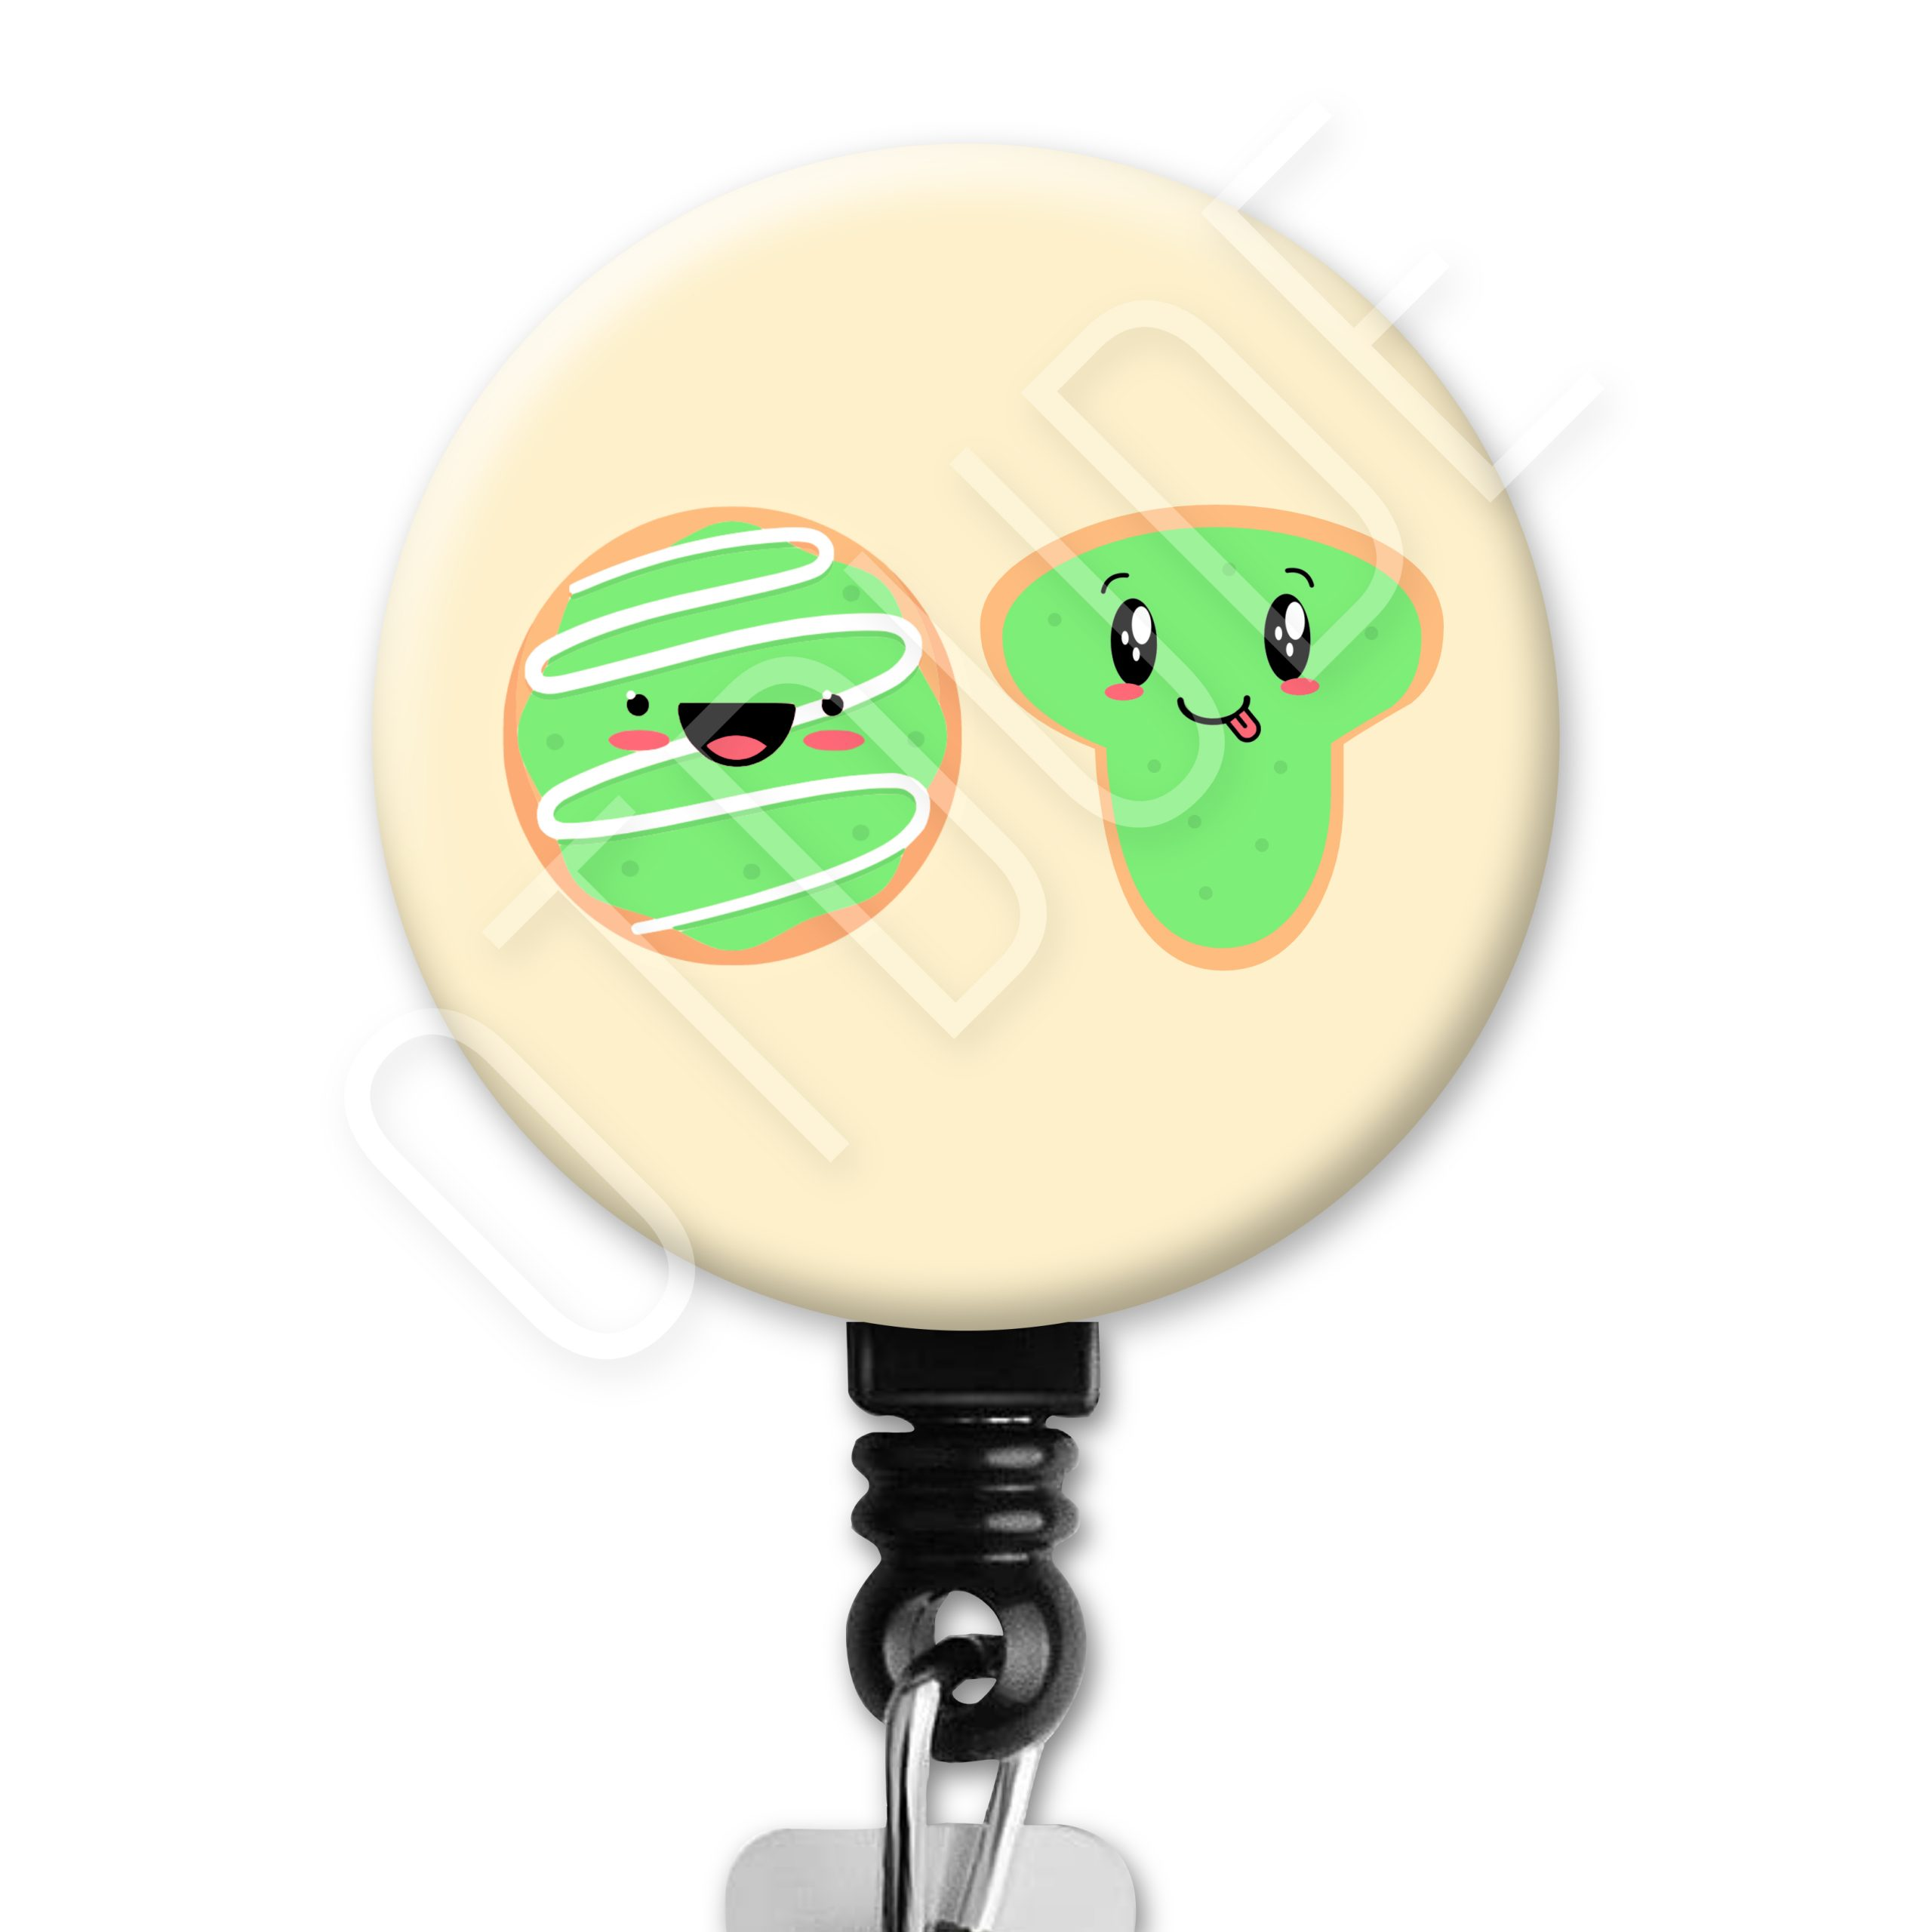 Kawaii Pastries OT Occupational Therapy Badge Reel